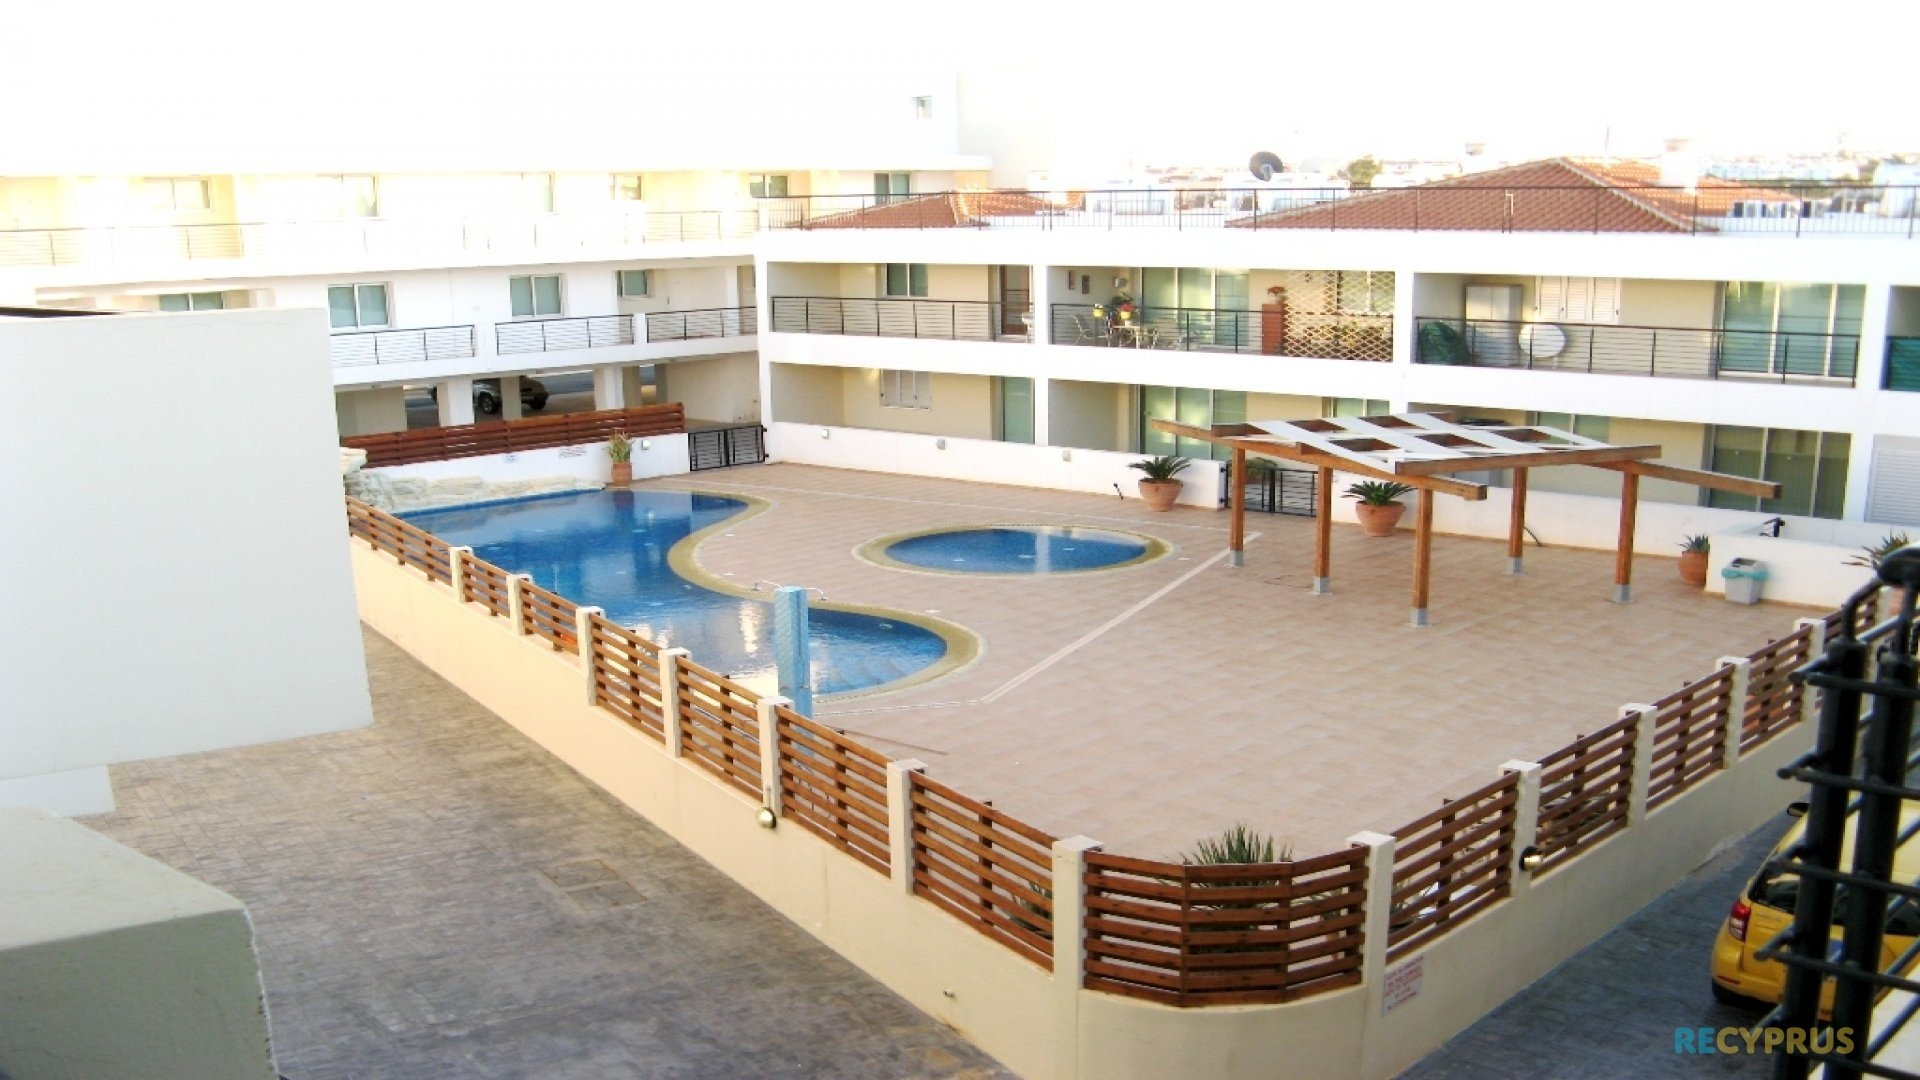 Apartment for sale Kapparis Famagusta Cyprus 9 3458